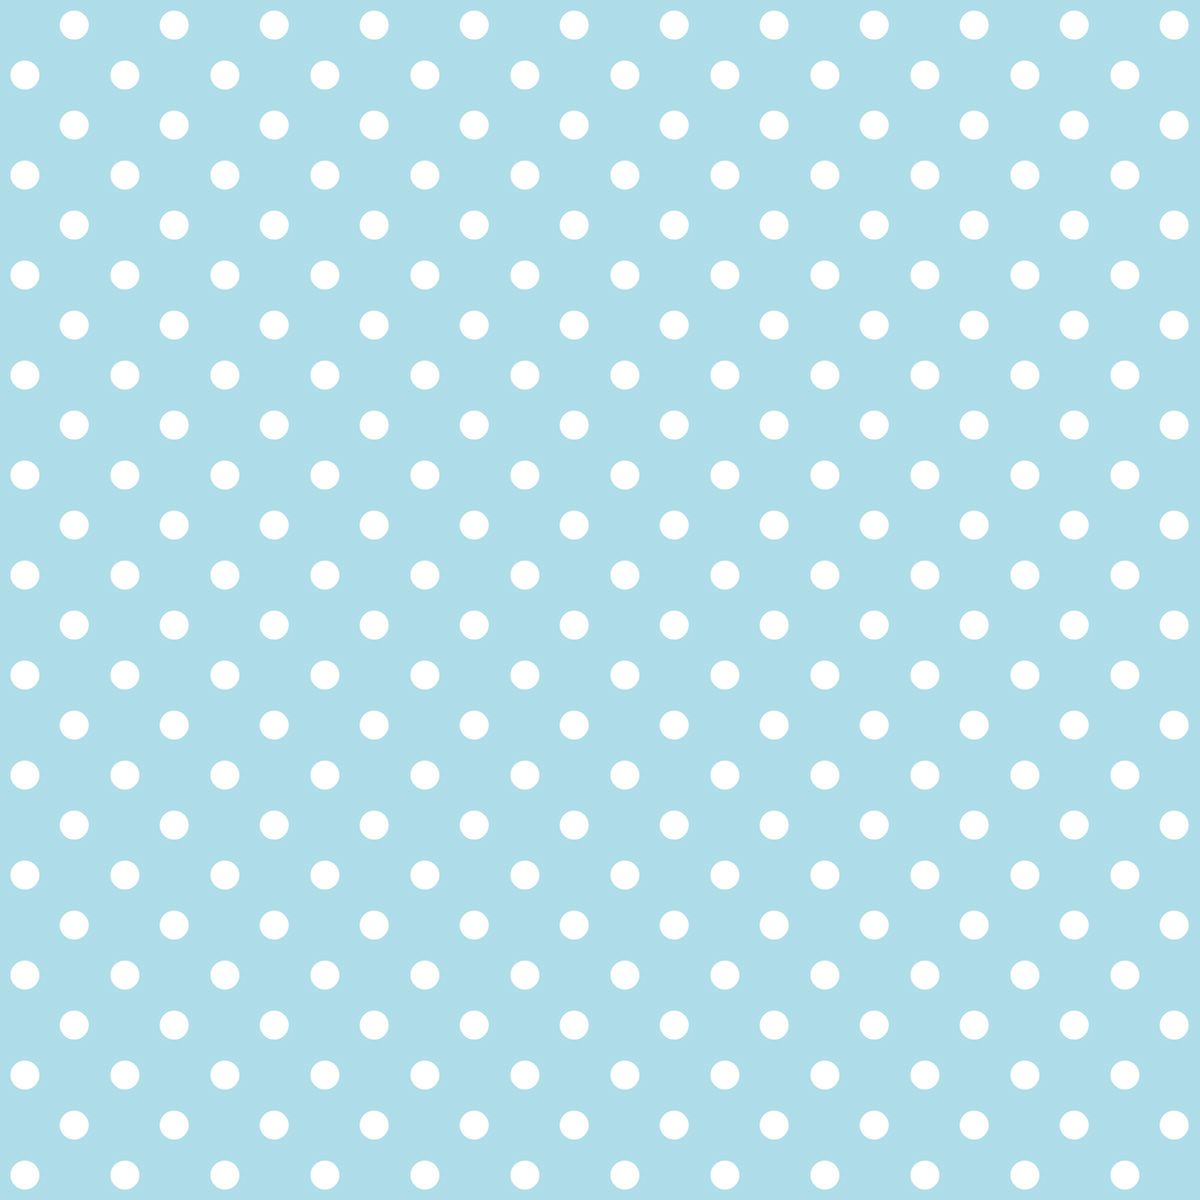 Free Digital Polka Dot Scrapbooking Paper Baby Blue